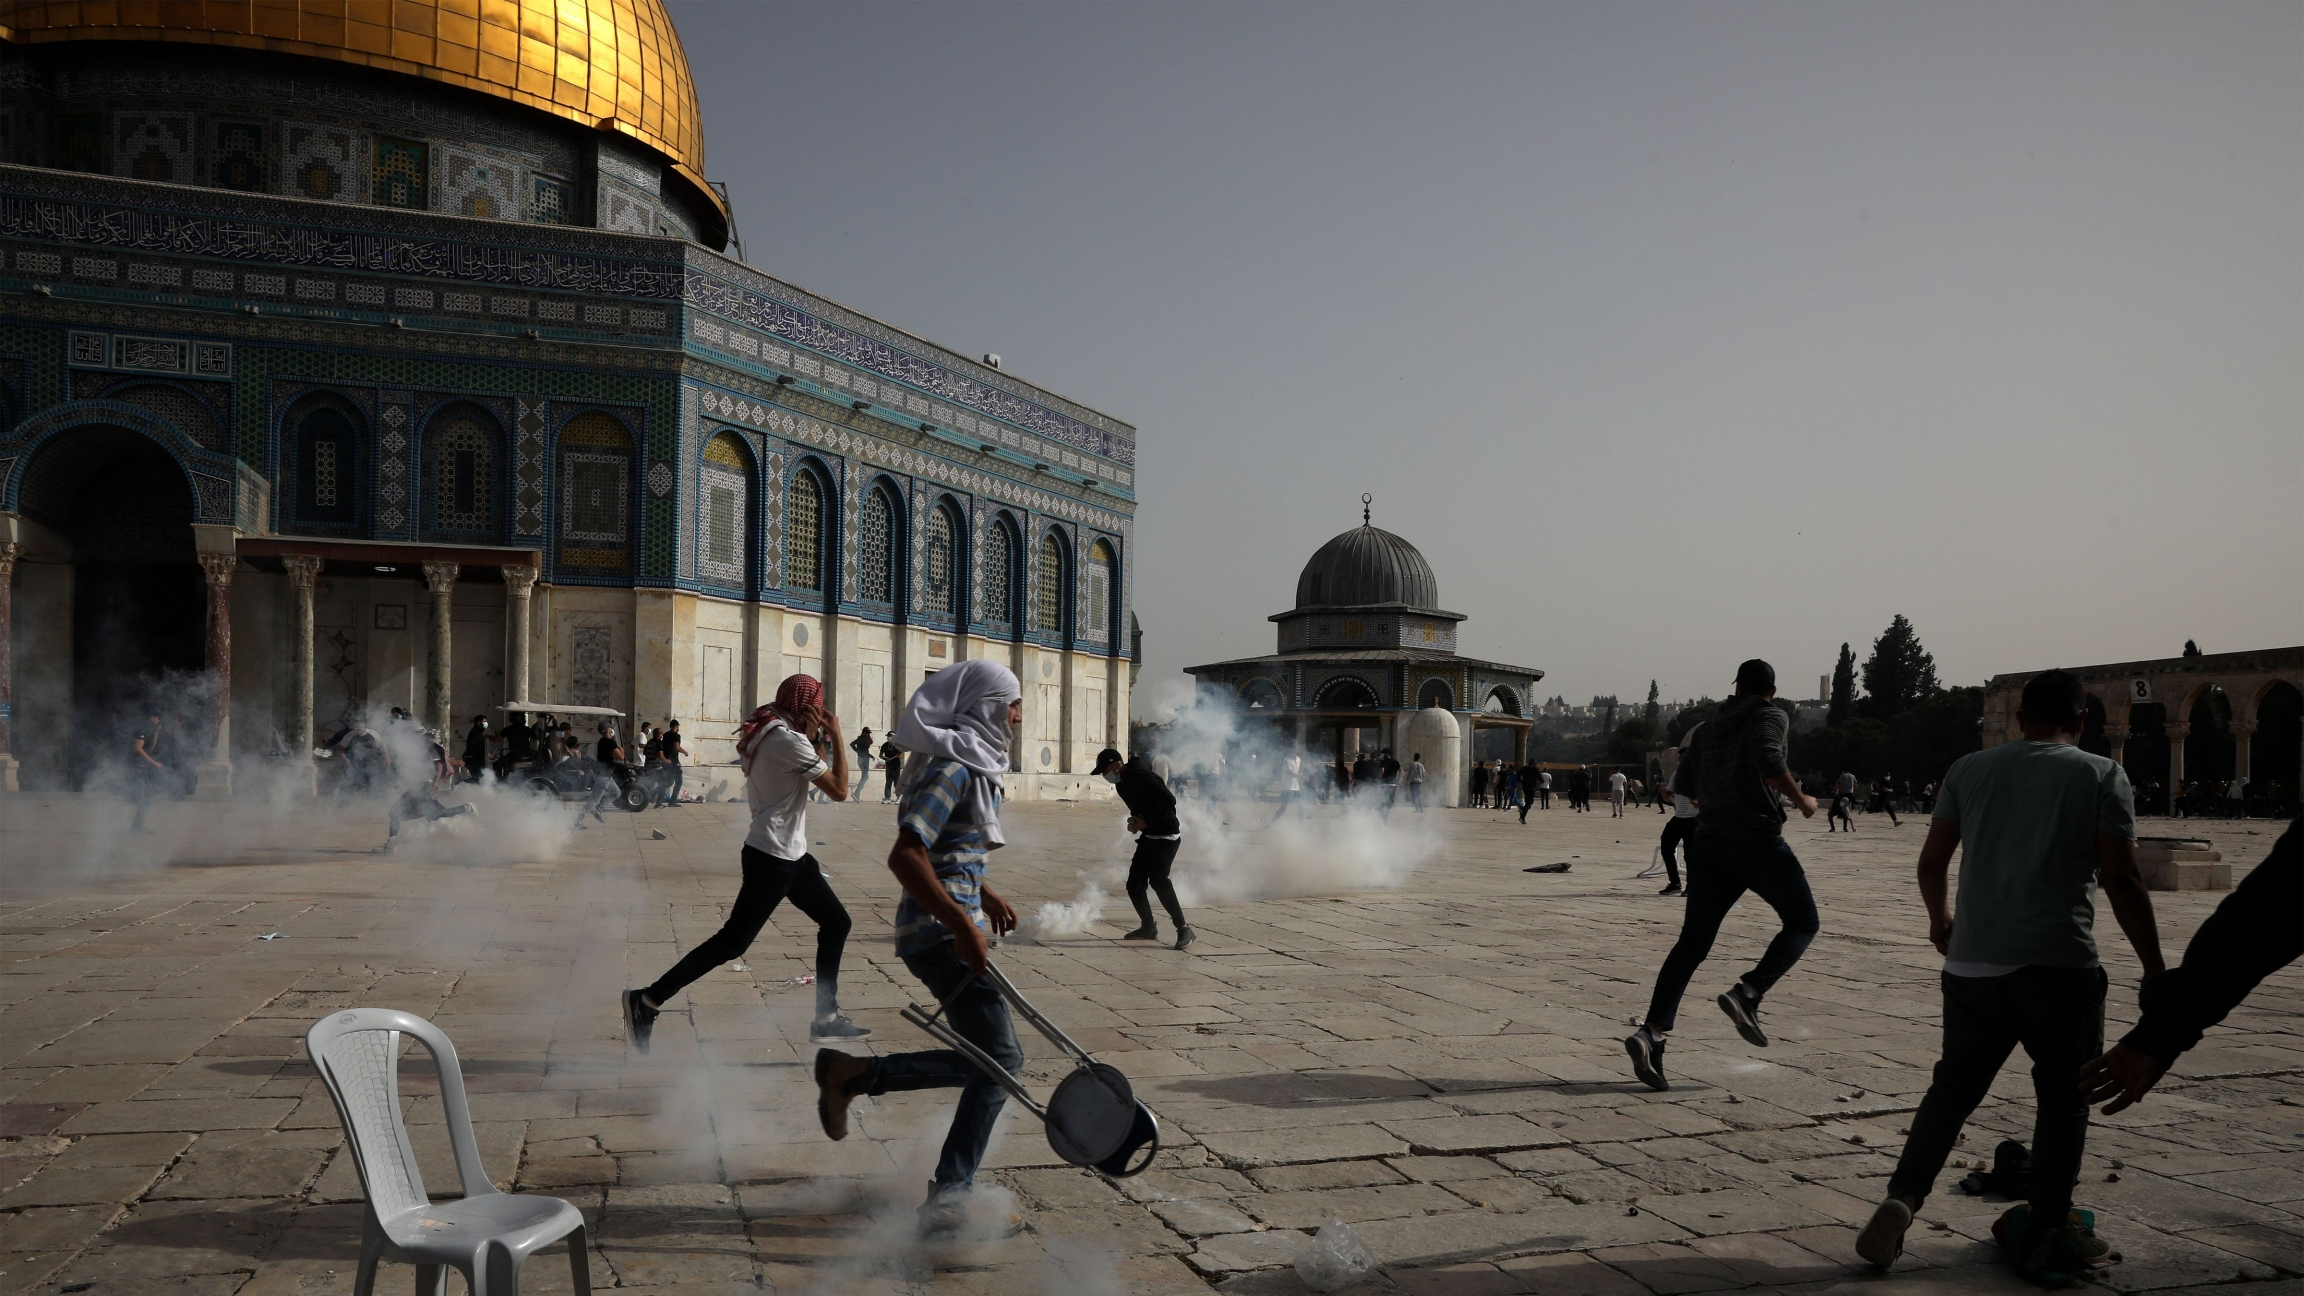 Palestinians run away from tear gas during clashes with Israeli security forces at the Al-Aqsa Mosque compound in Jerusalem's Old City Monday, May 10, 2021.